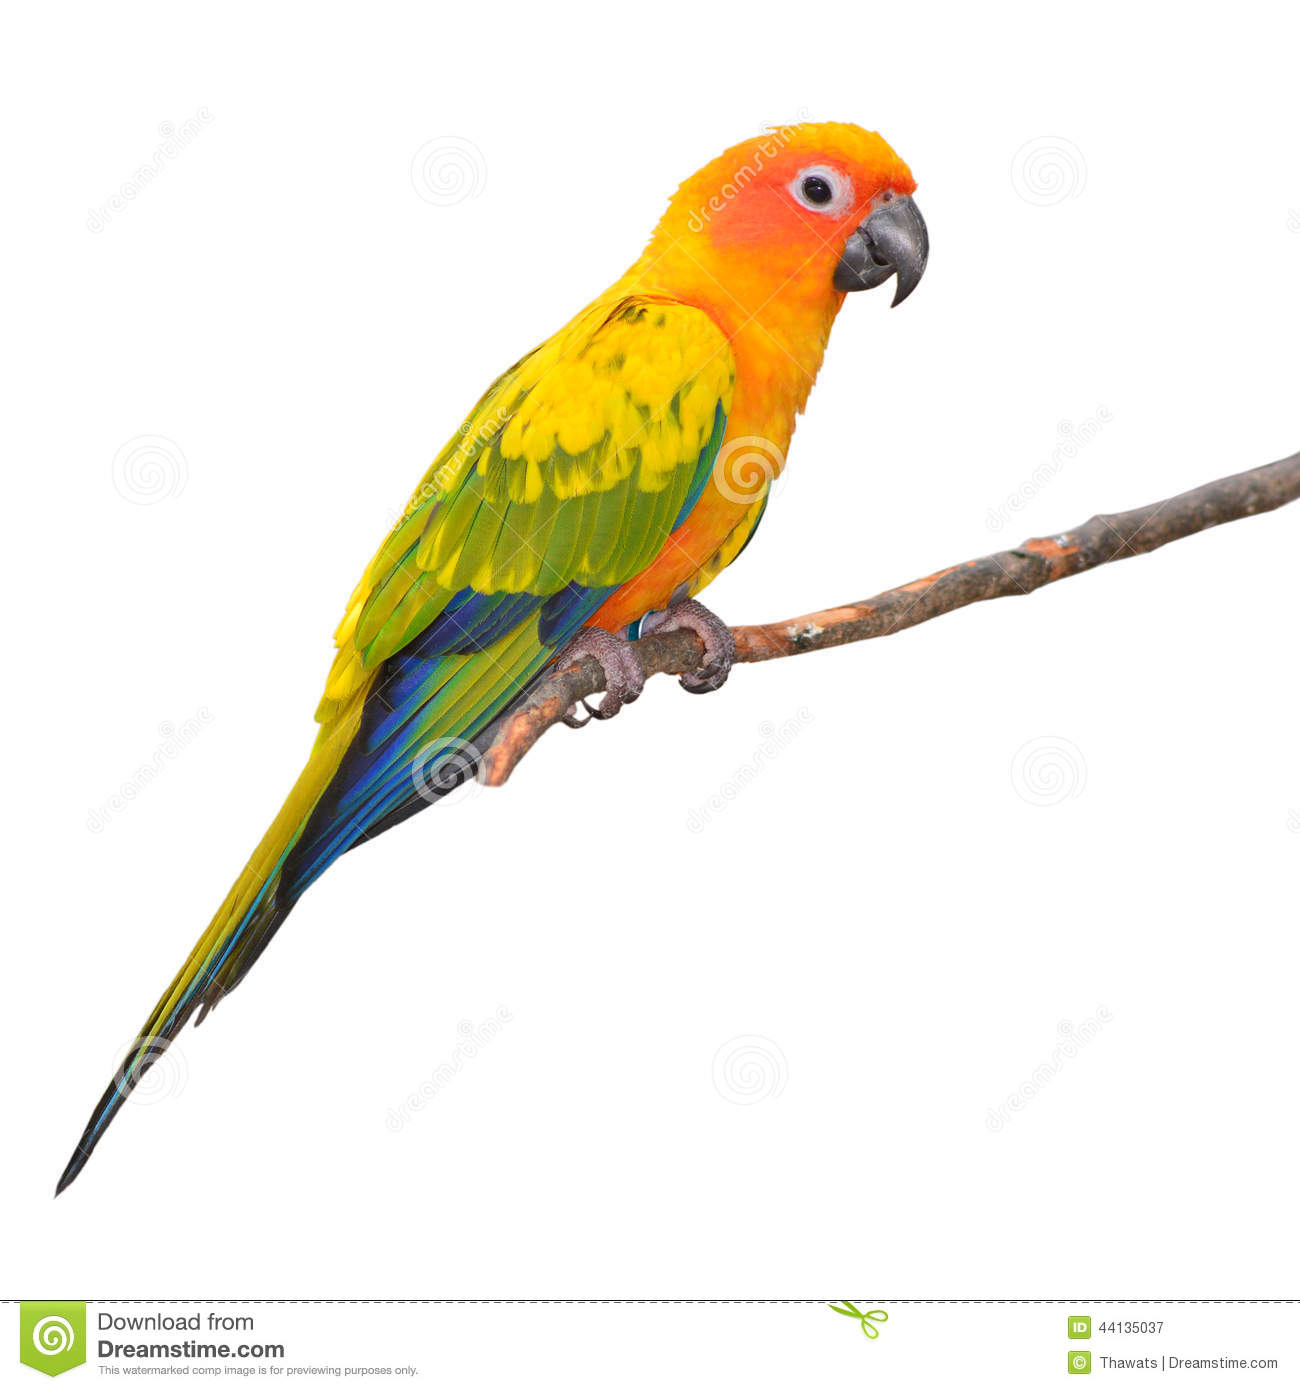 Sun Parakeet clipart #17, Download drawings